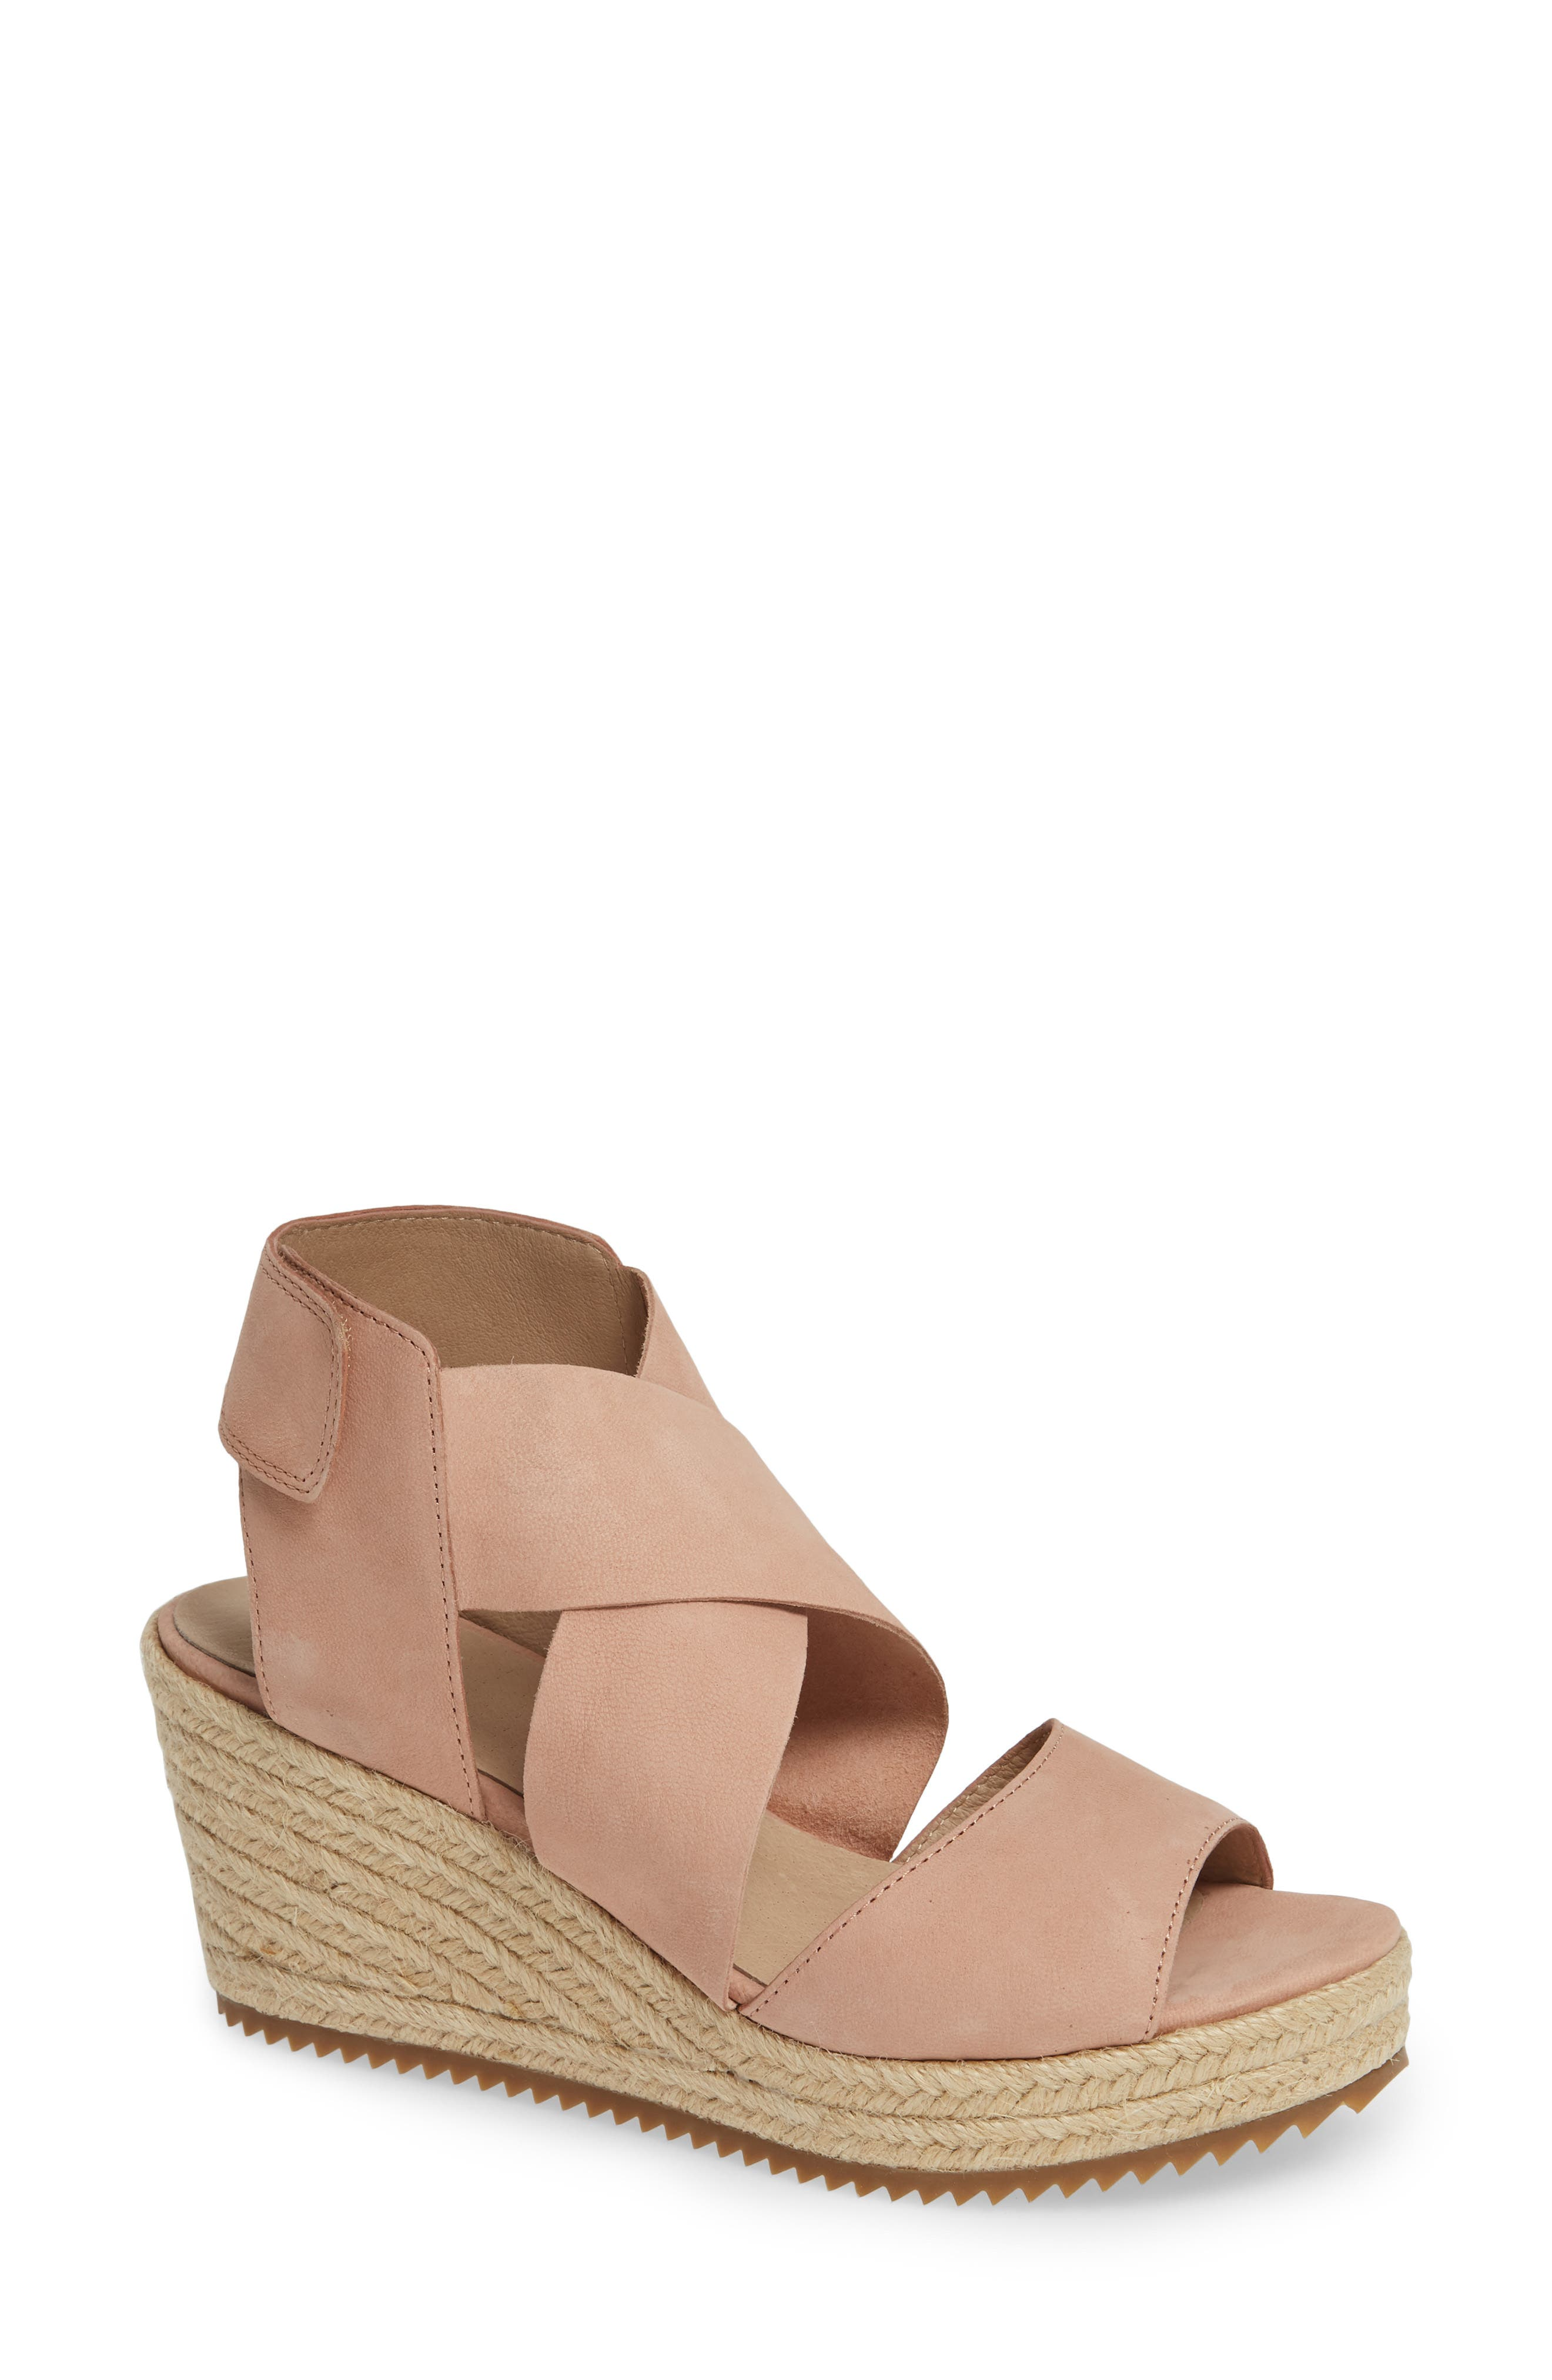 'Willow' Espadrille Wedge Sandal,                             Main thumbnail 1, color,                             TOFFEE CREAM NUBUCK